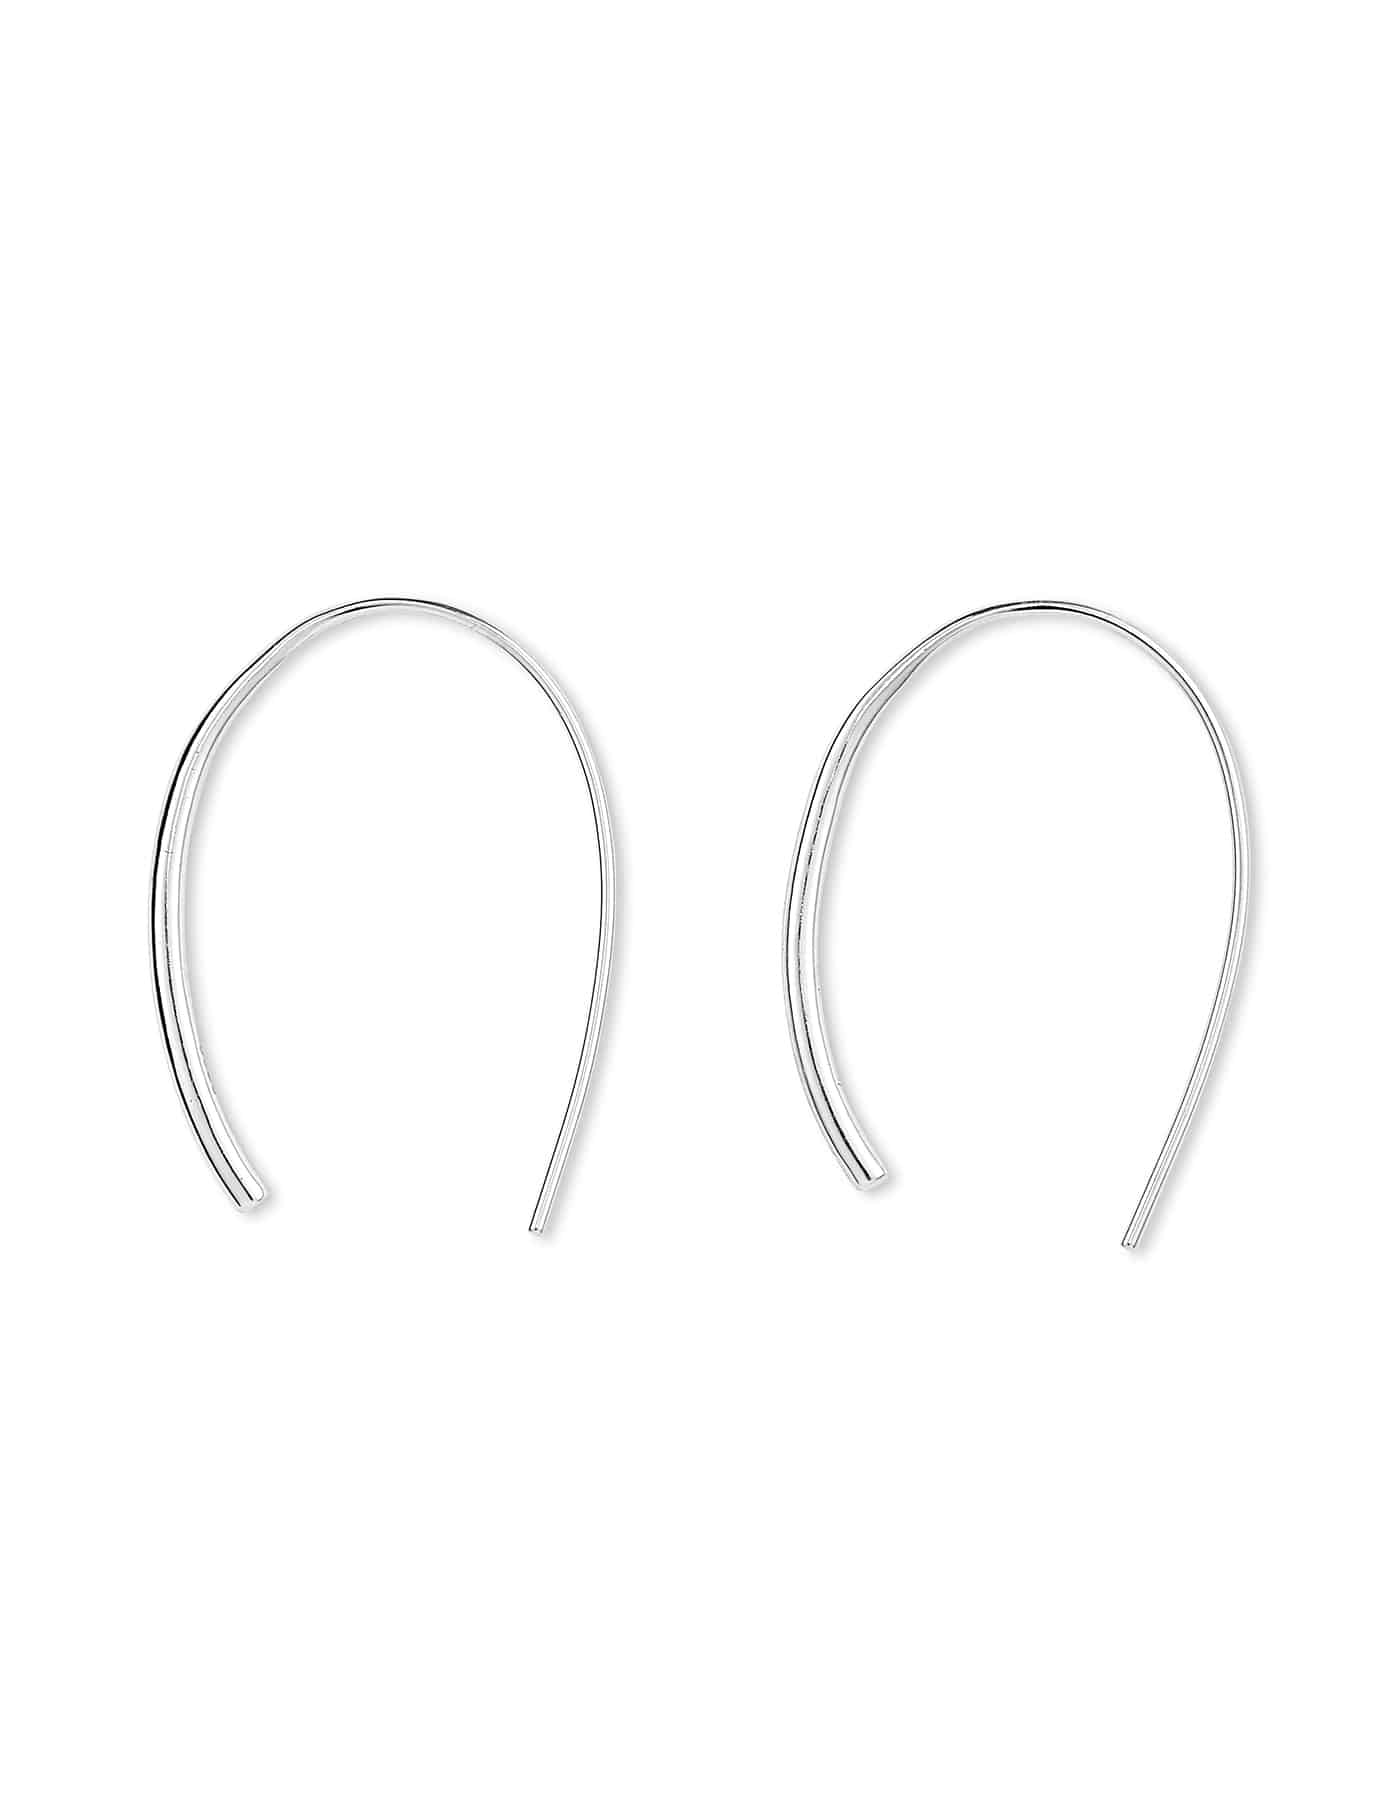 Silver Open Hoop Earrings